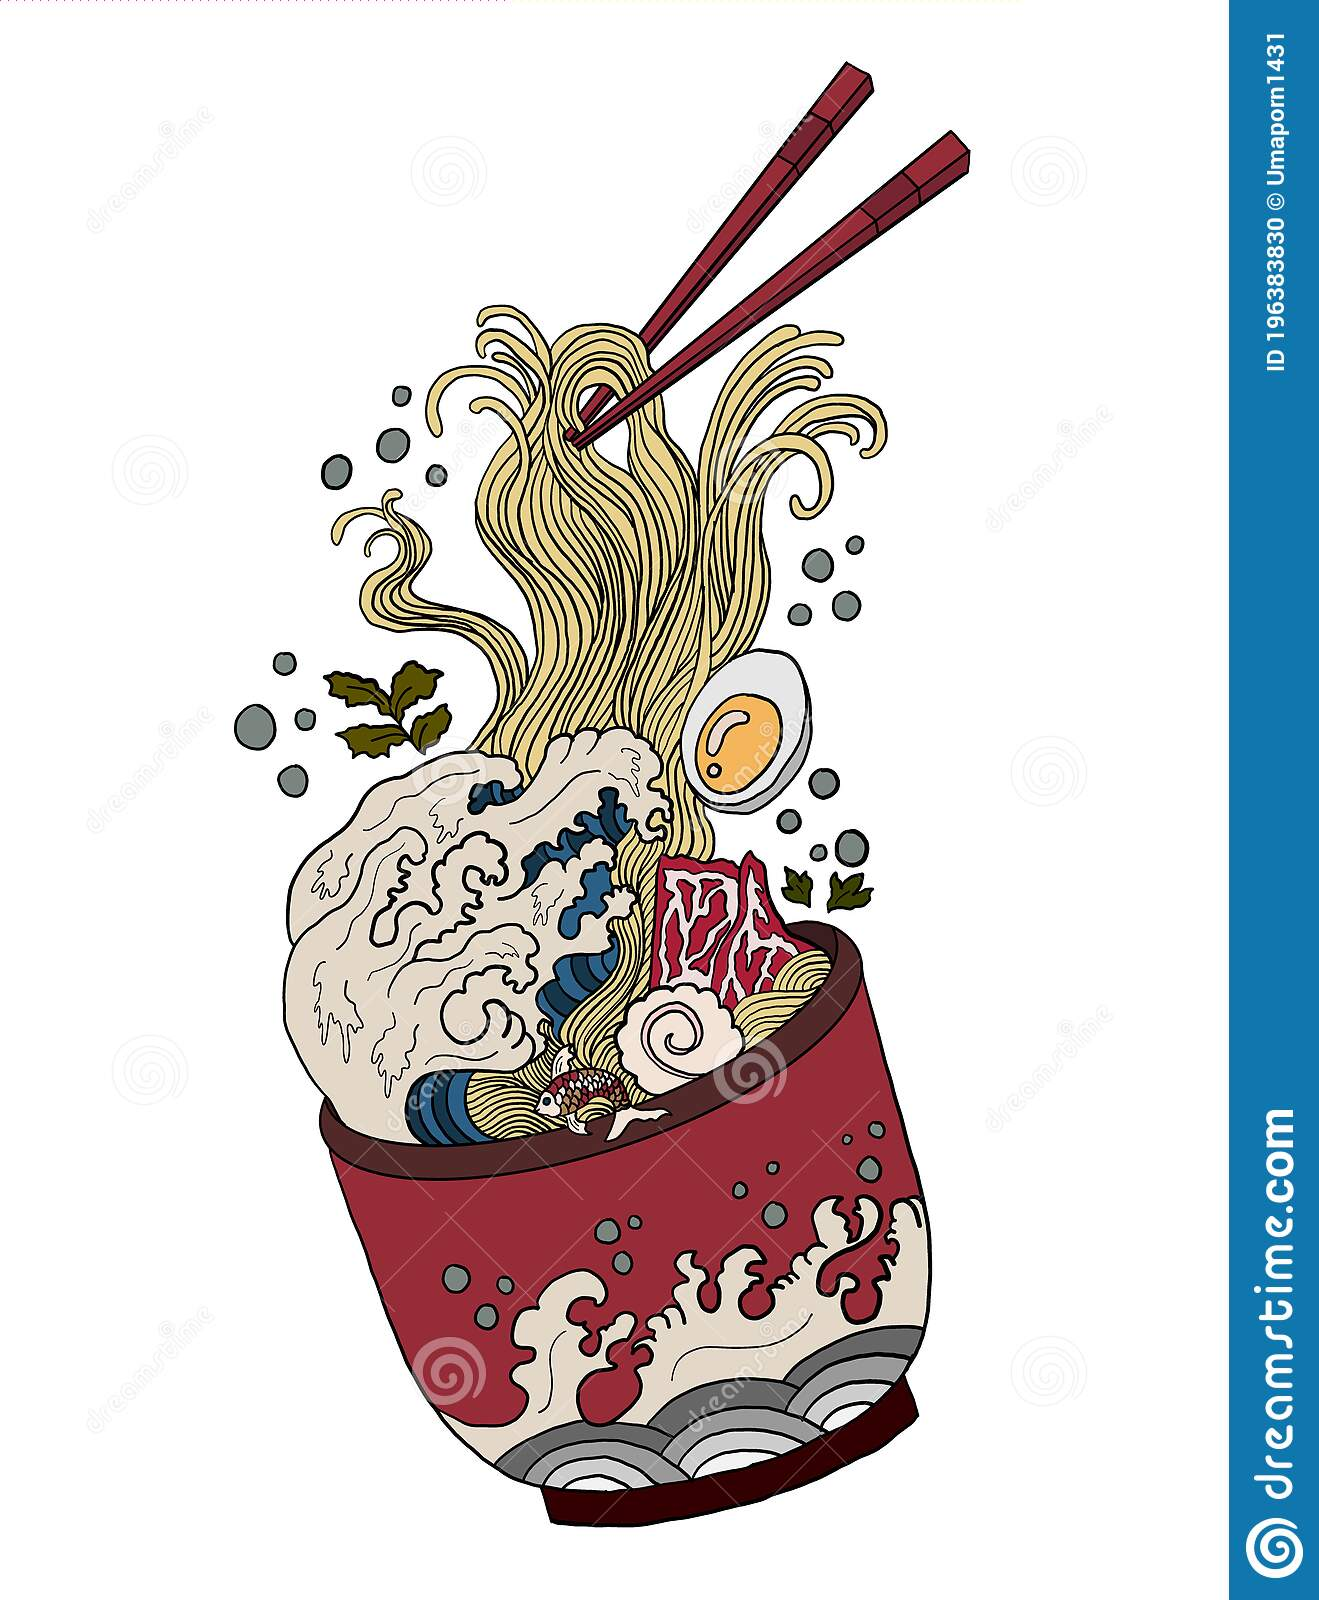 Ramen Vector Illustration For Doodle Art Stock Vector Illustration Of Icon Menu 196383830